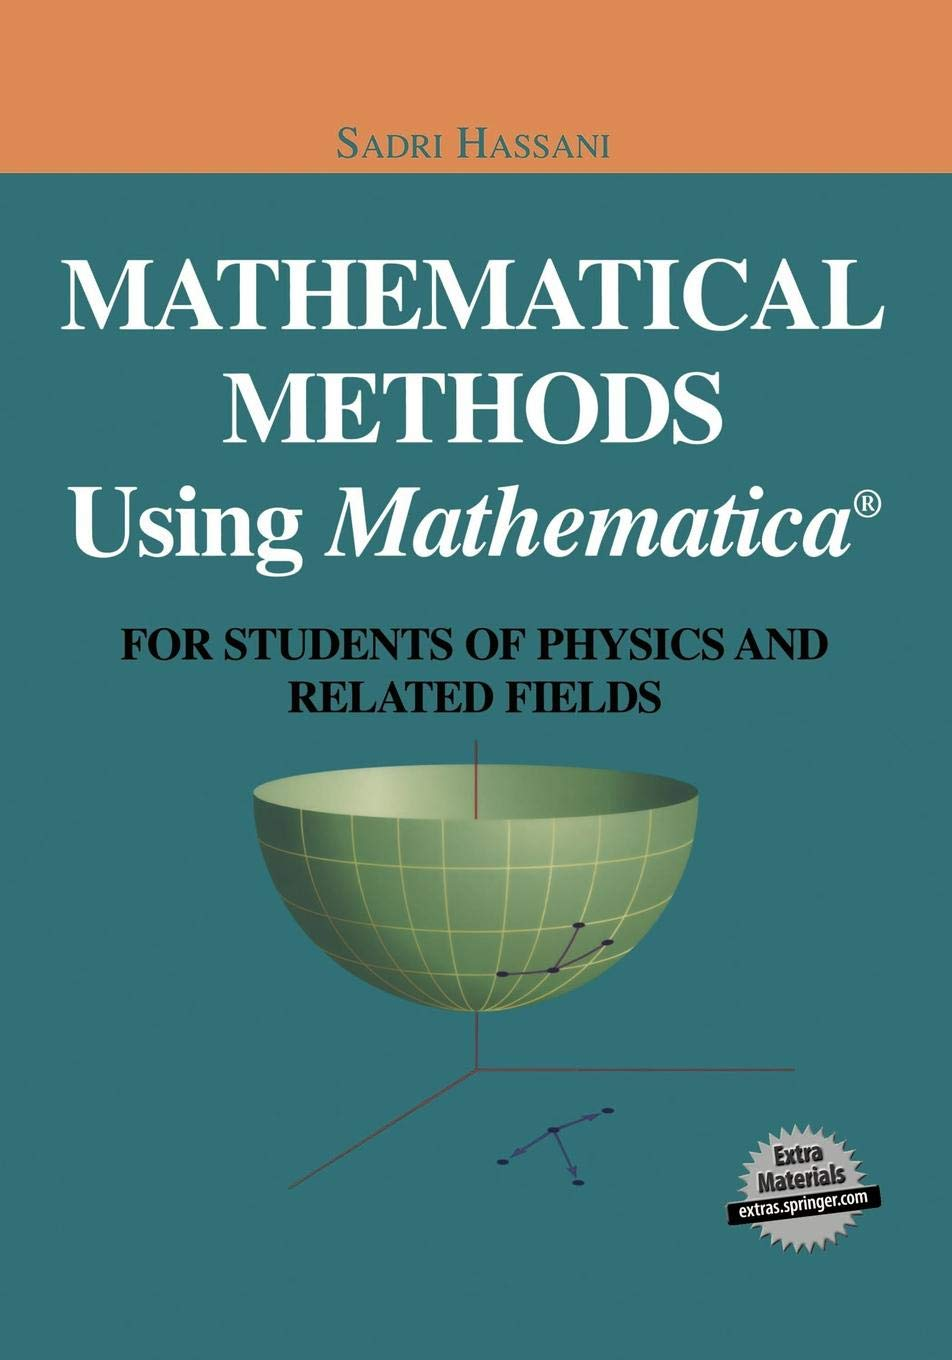 Mathematical Methods Using Mathematica  For Student Of Physical And Related Fields  For Students Of Physics And Related Fields  Undergraduate Texts In Contemporary Physics